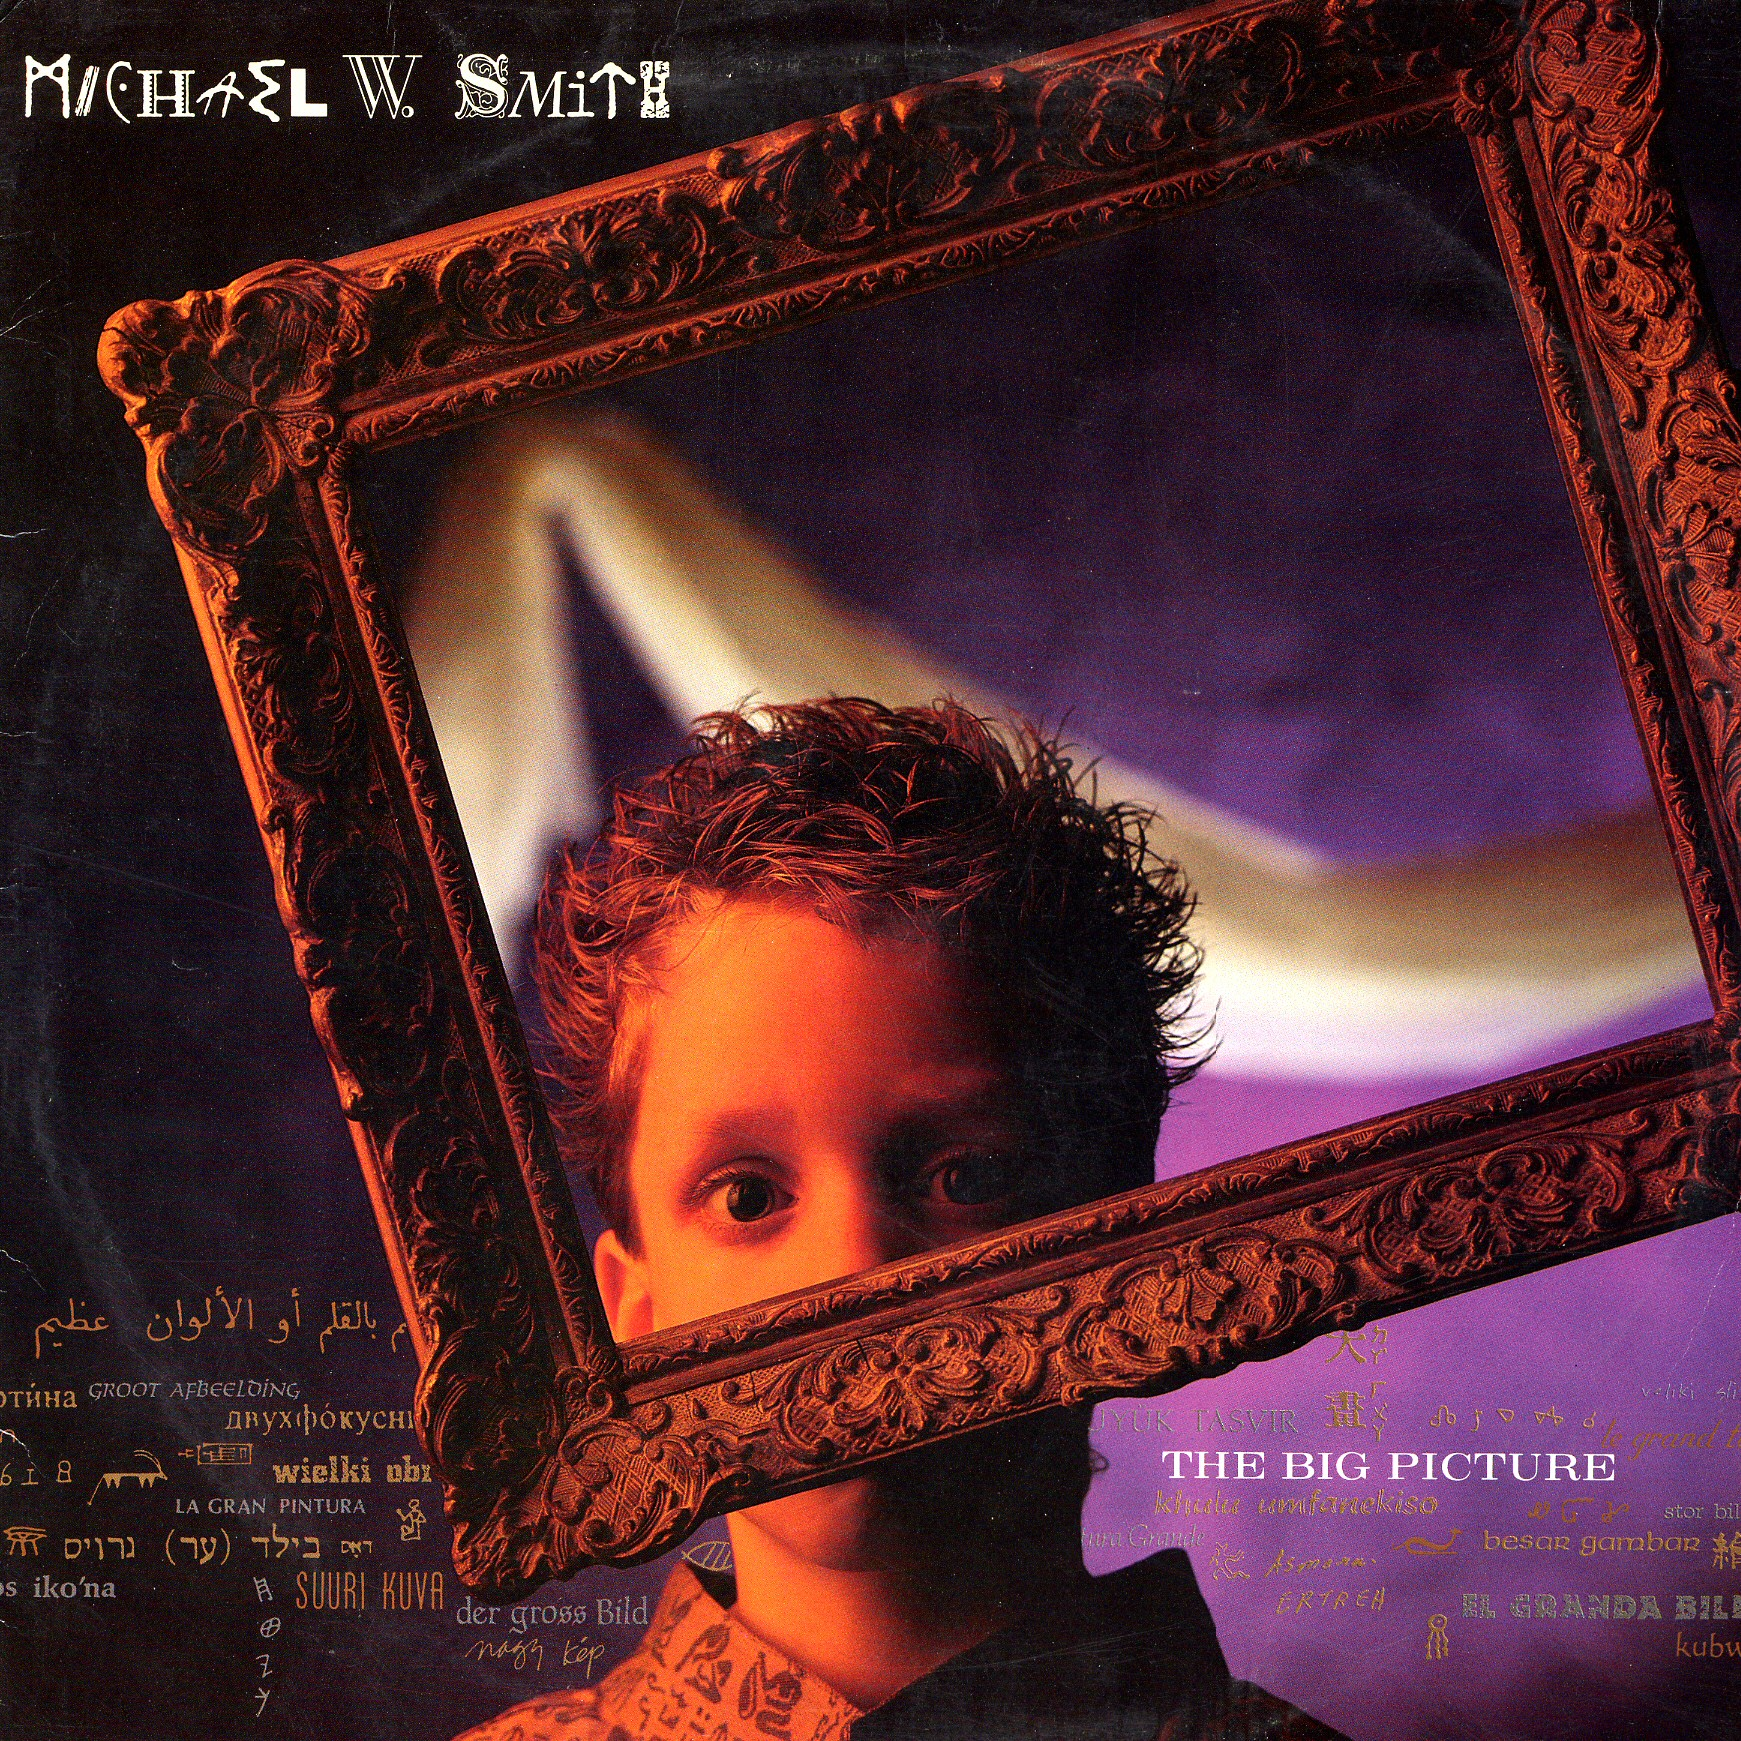 Michael W. Smith, The Big Picture